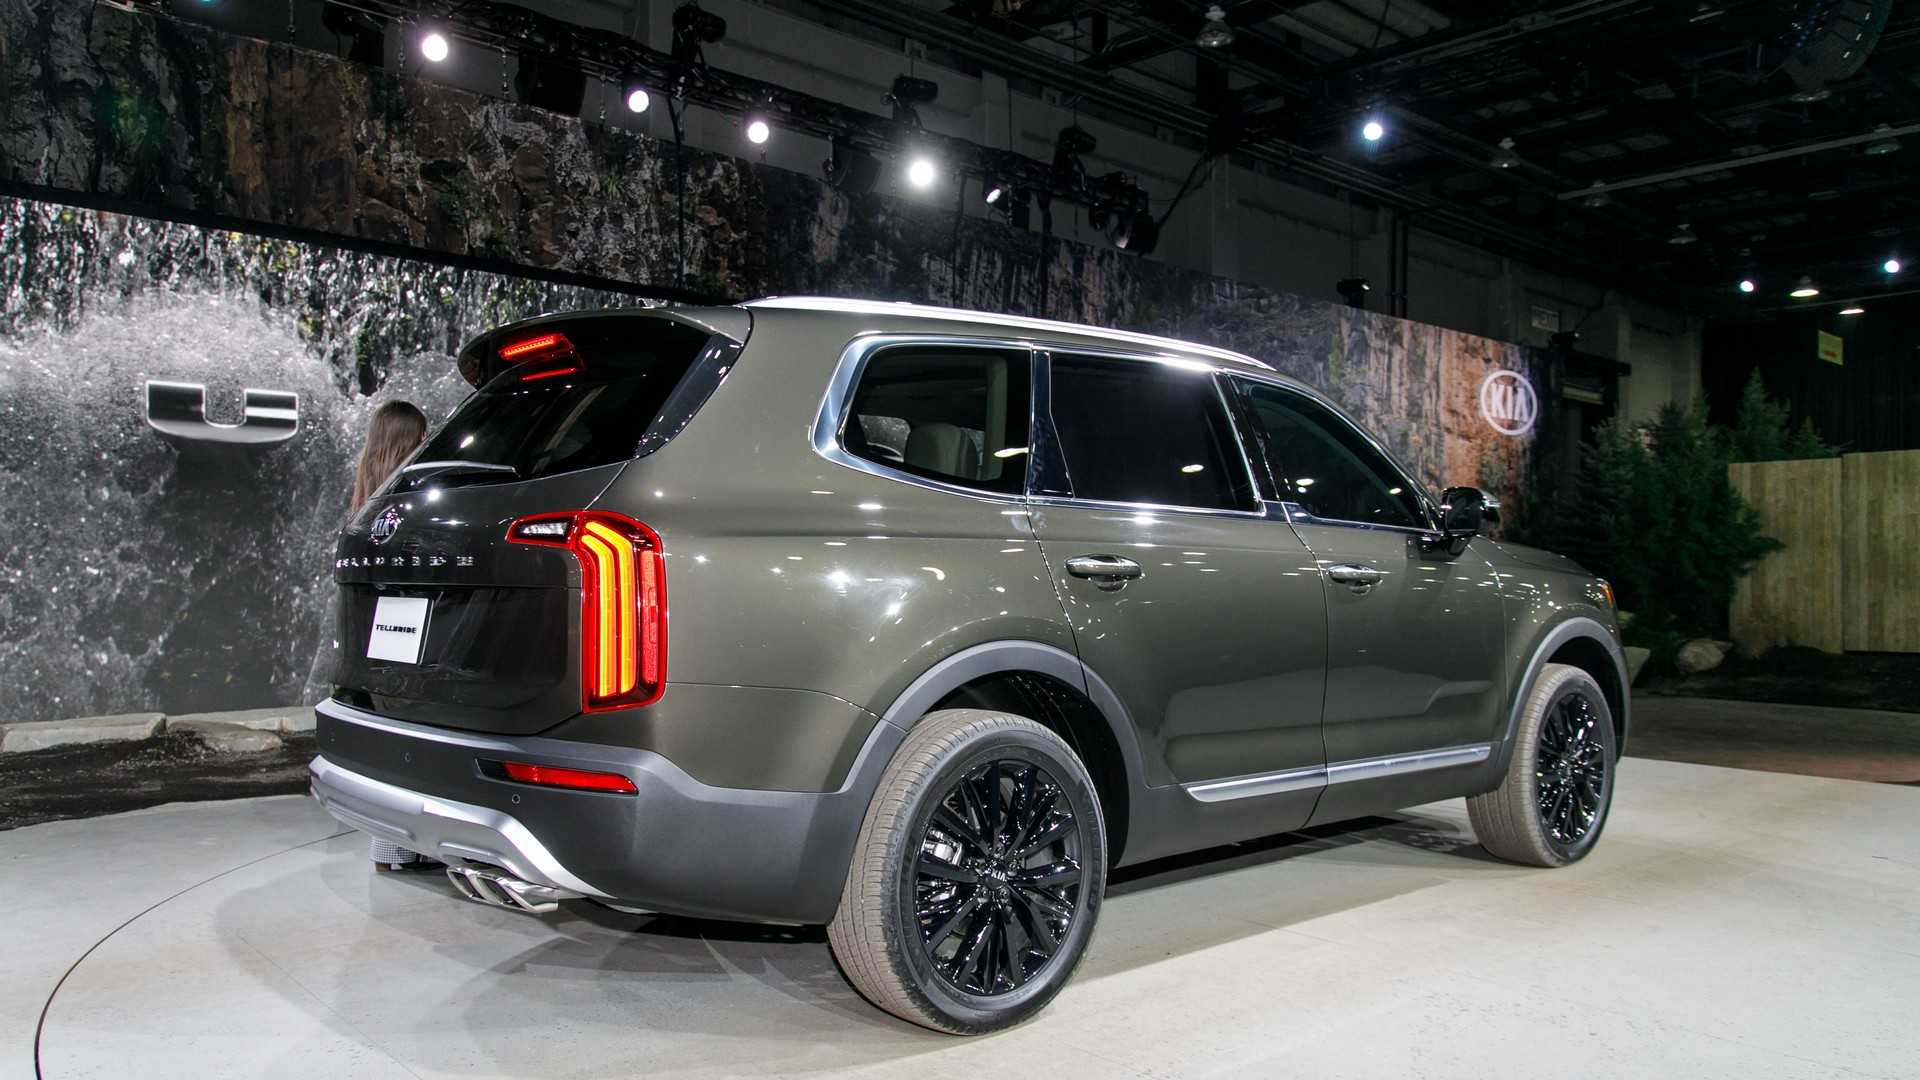 72 The 2020 Kia Telluride Australia Price Design And Review